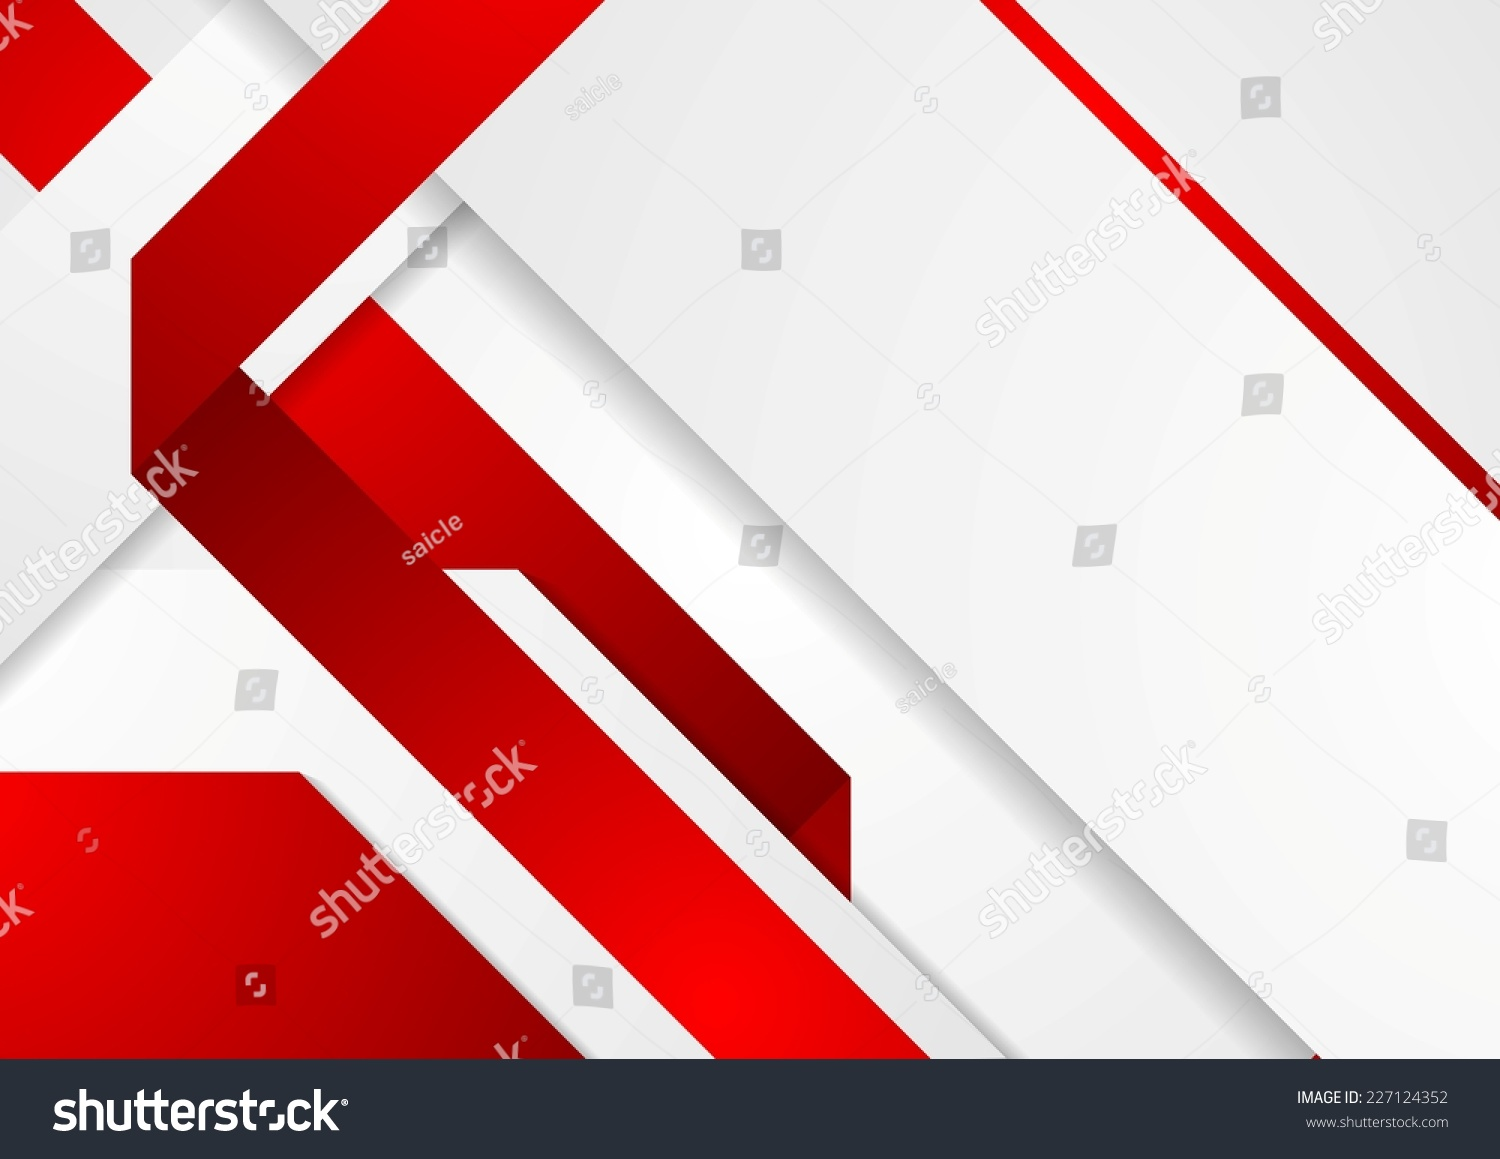 Bright Tech Corporate Red And White Background. Vector Design ...: www.shutterstock.com/pic-227124352/stock-vector-bright-tech...